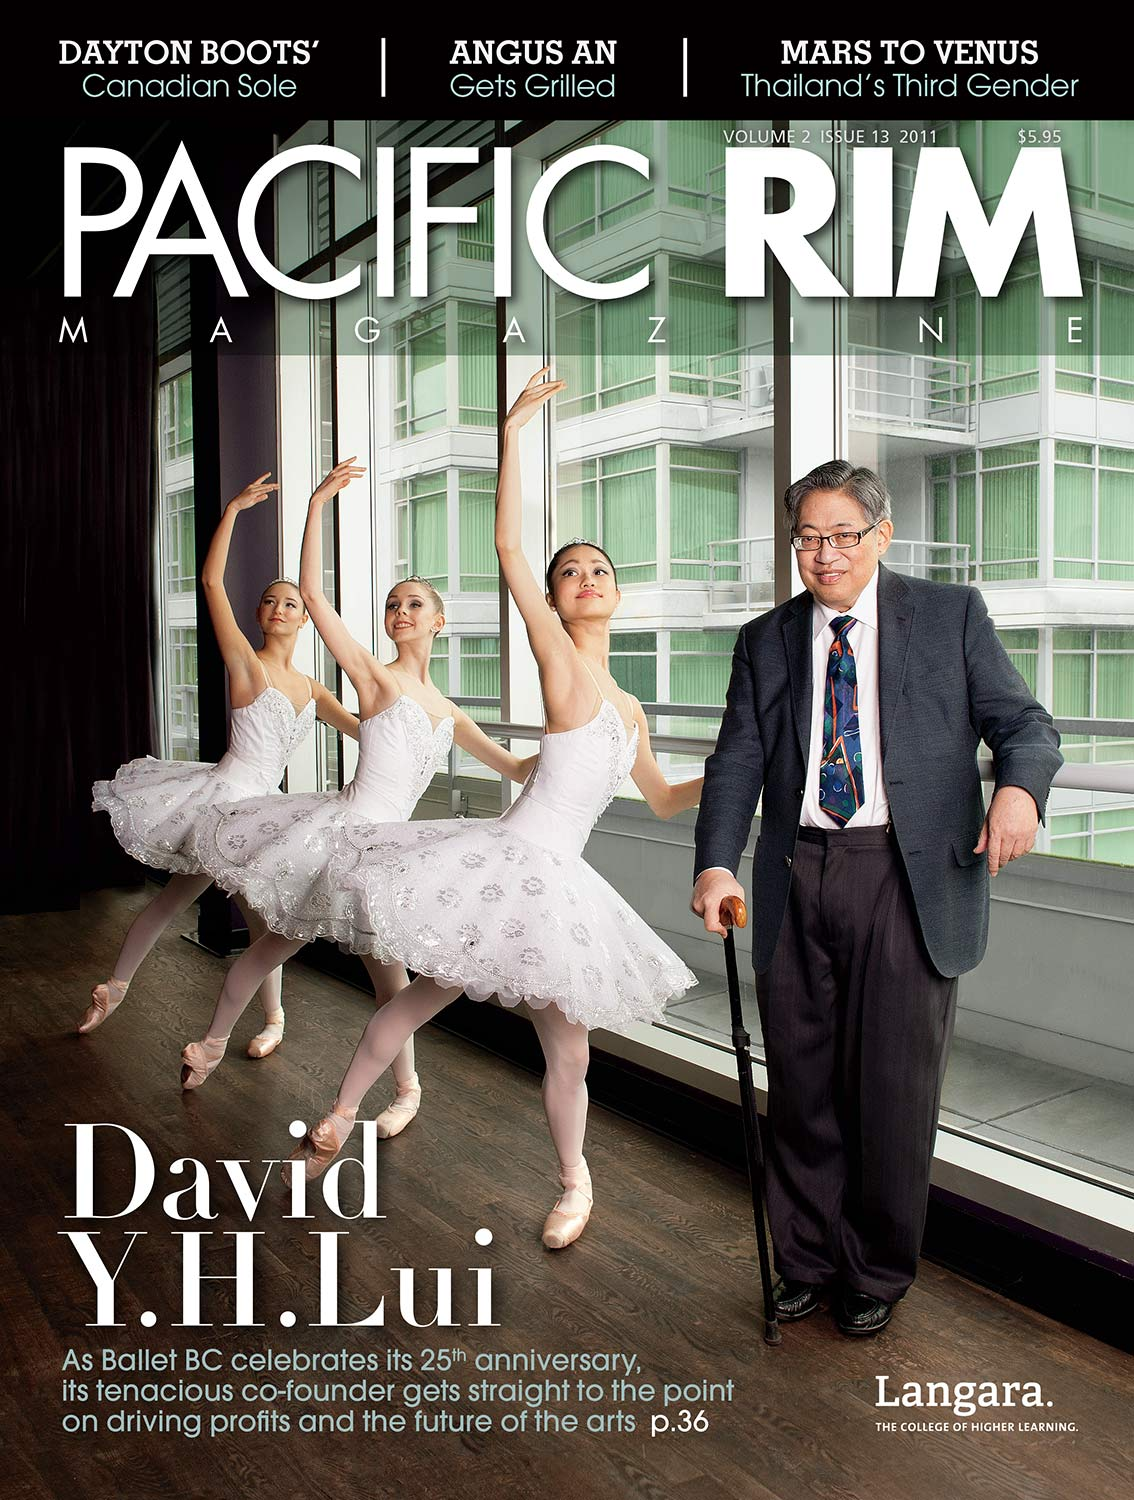 2011 Cover of Pacific Rim. Image of David Y.H. Lui and three ballerinas.